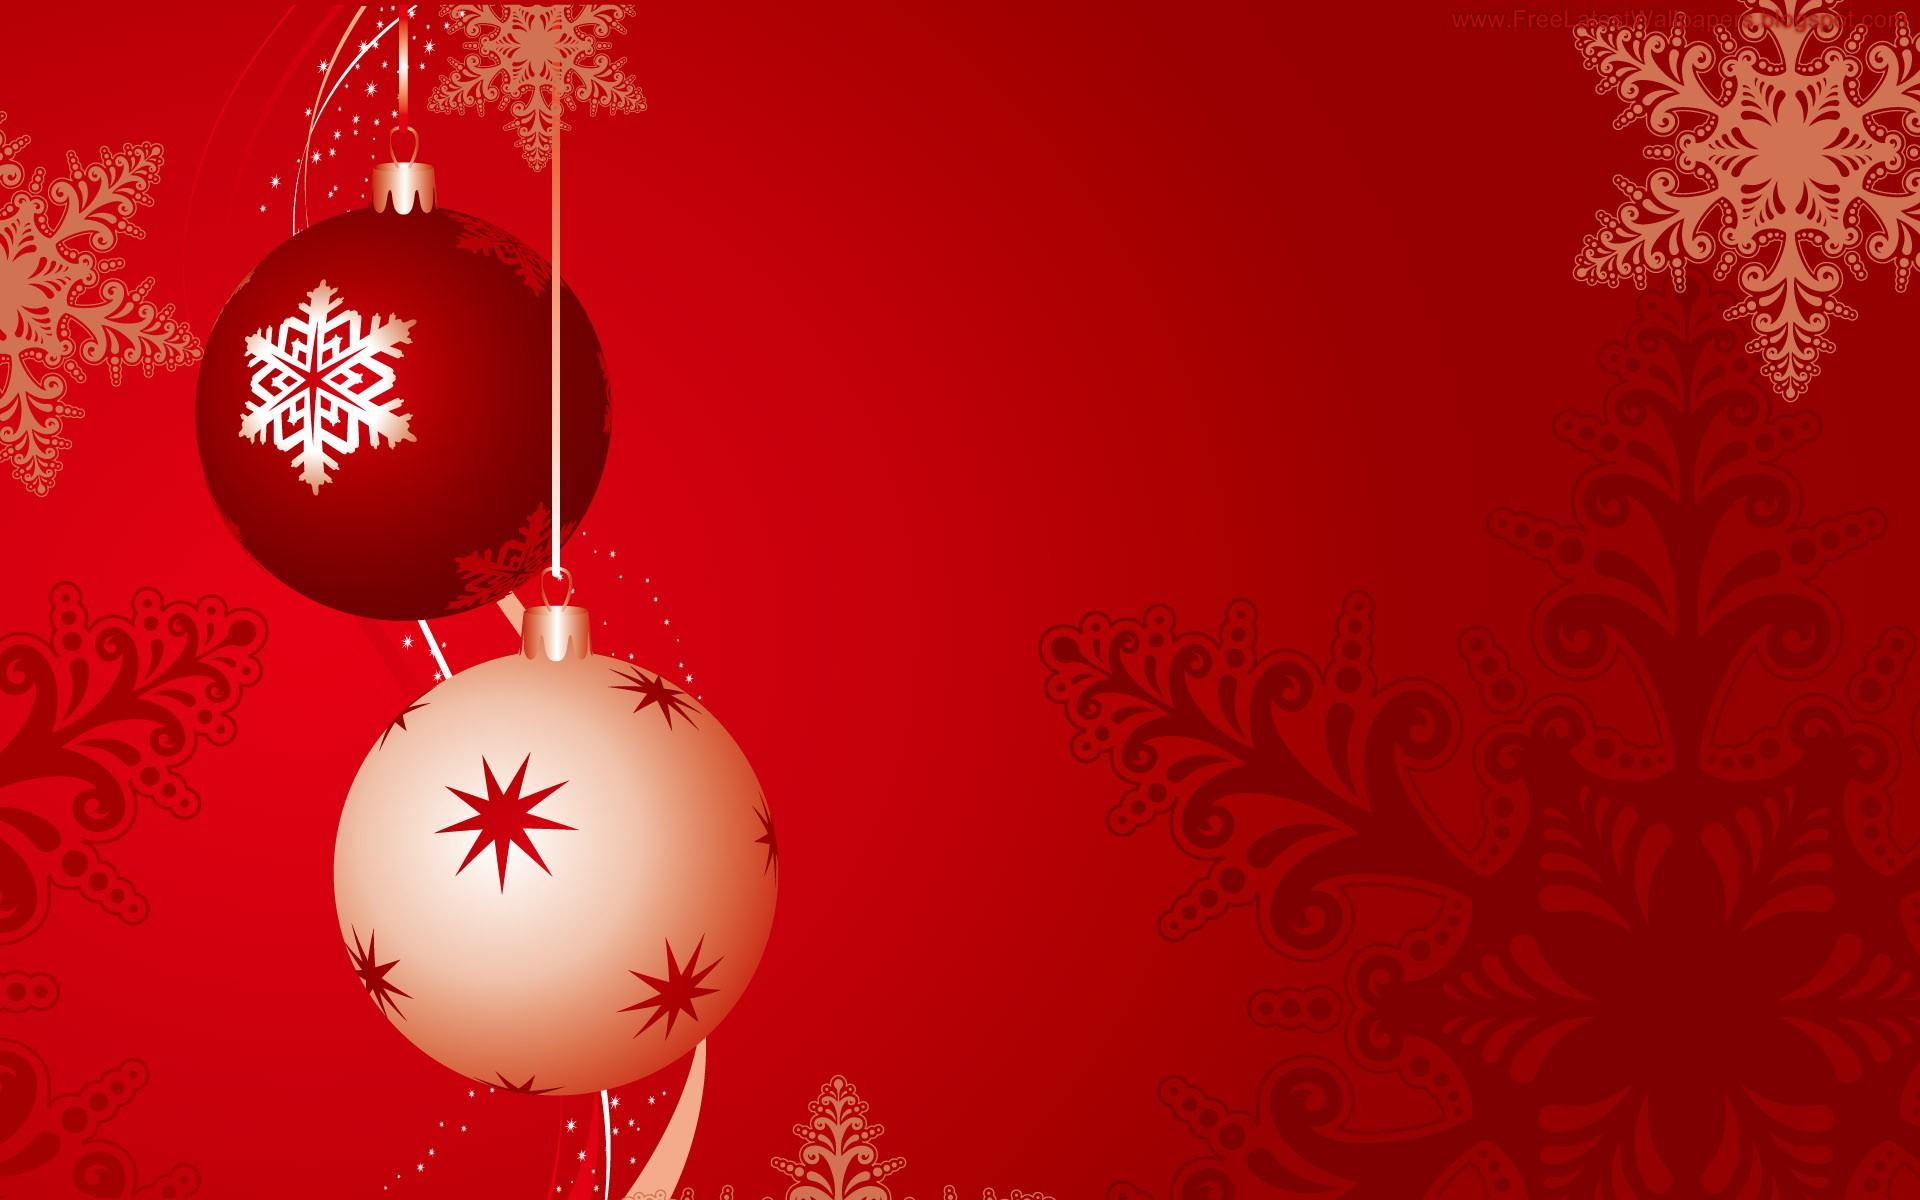 Collection of Free Holiday Backgrounds on HDWallpapers